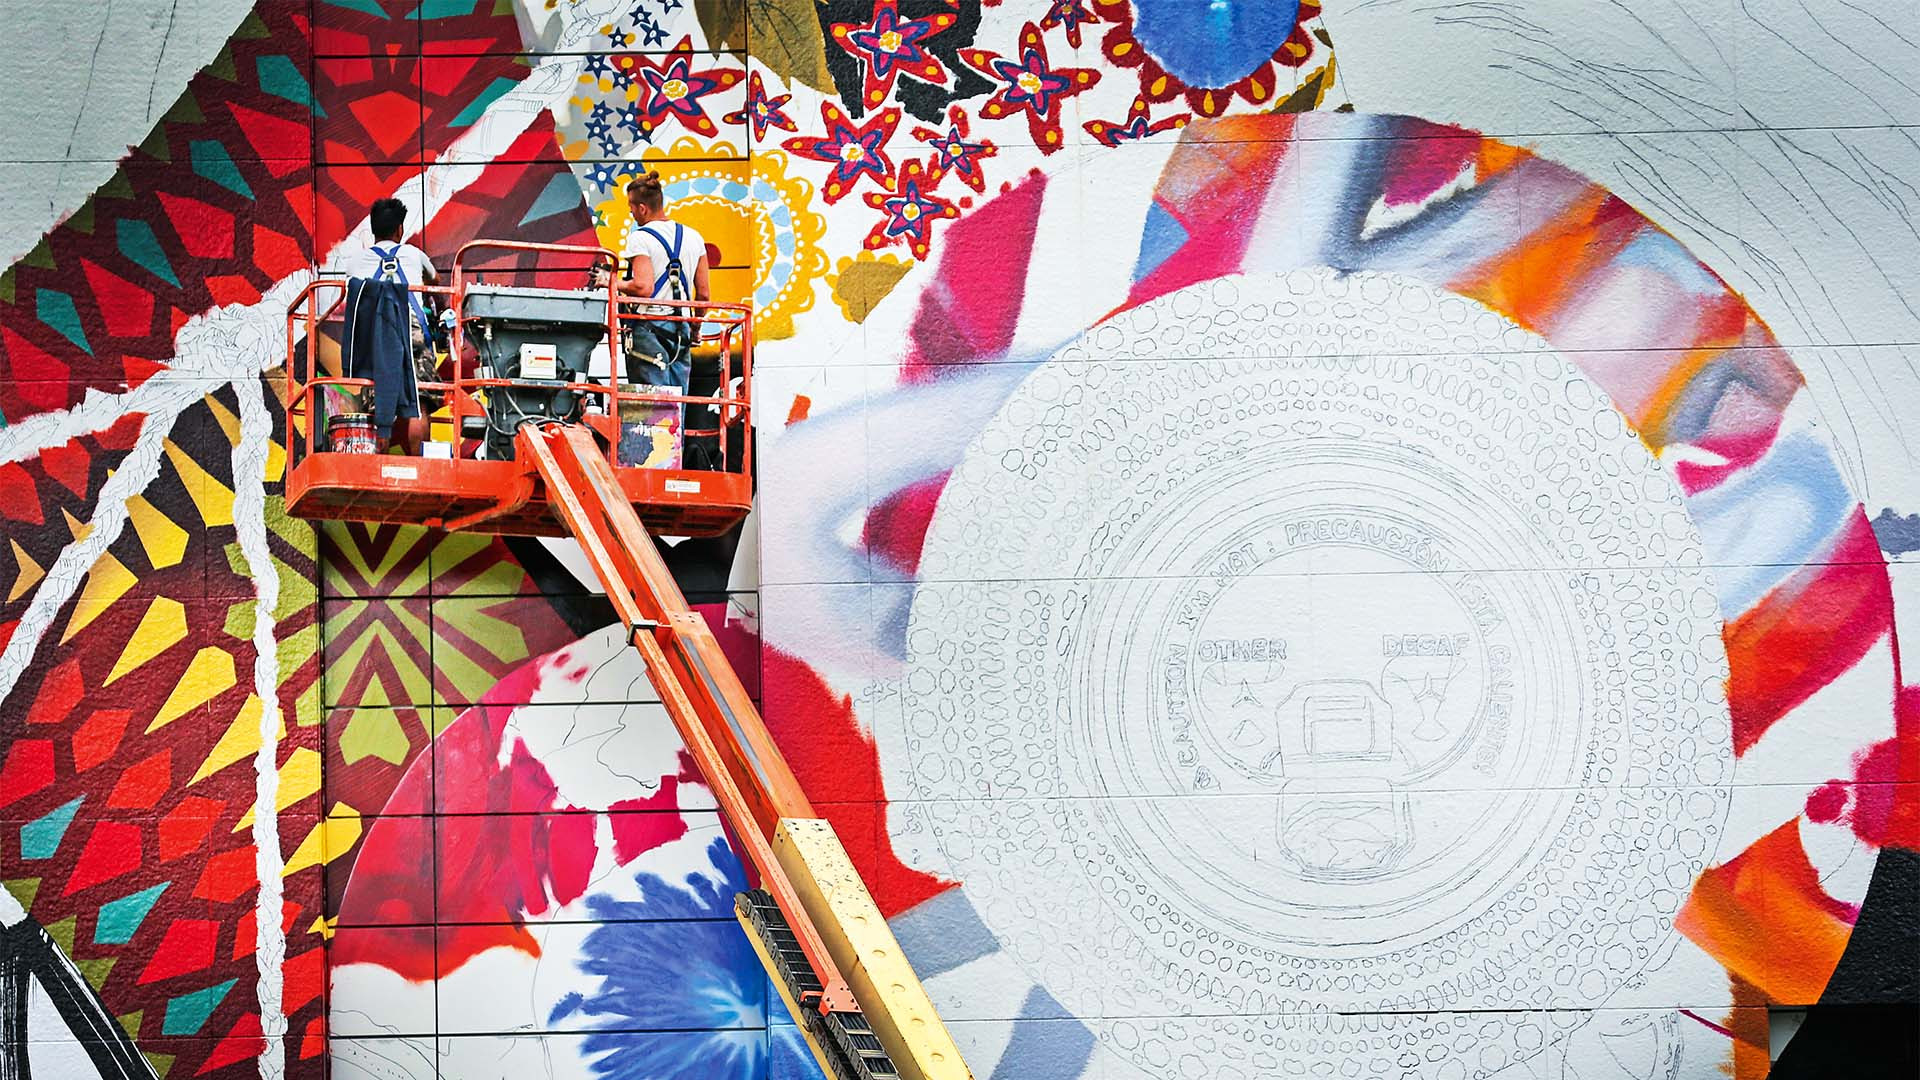 Two artists paint the Rose Kennedy Greenway mural from a cherry picker